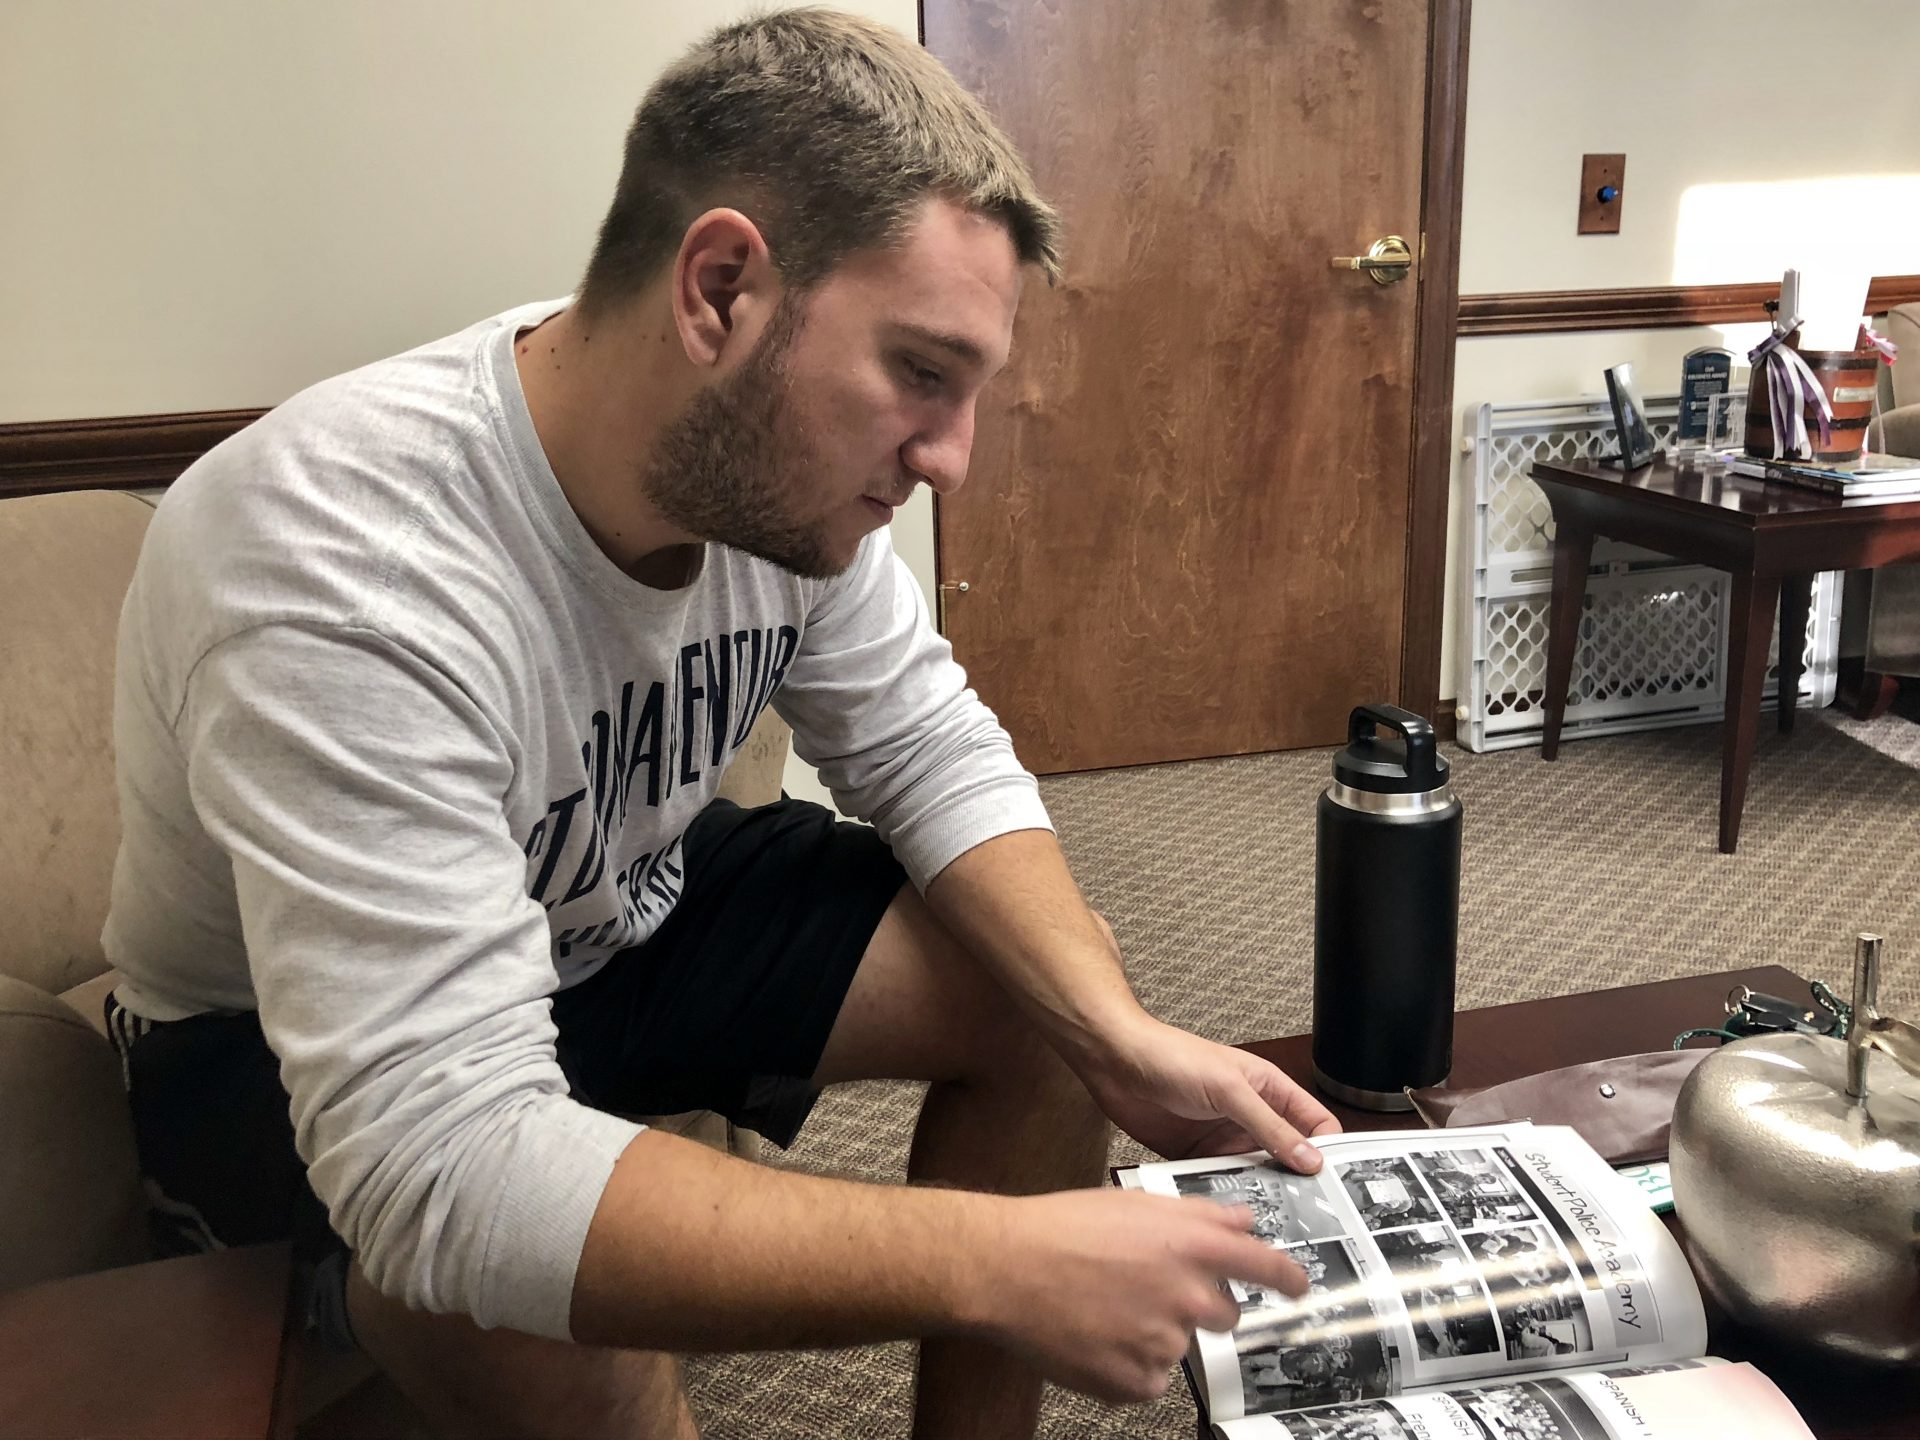 Grant Mundy, who went to school with Dylan Elchin, looks at old yearbooks photos in a Beaver Area School District office on Dec. 13, 2018.